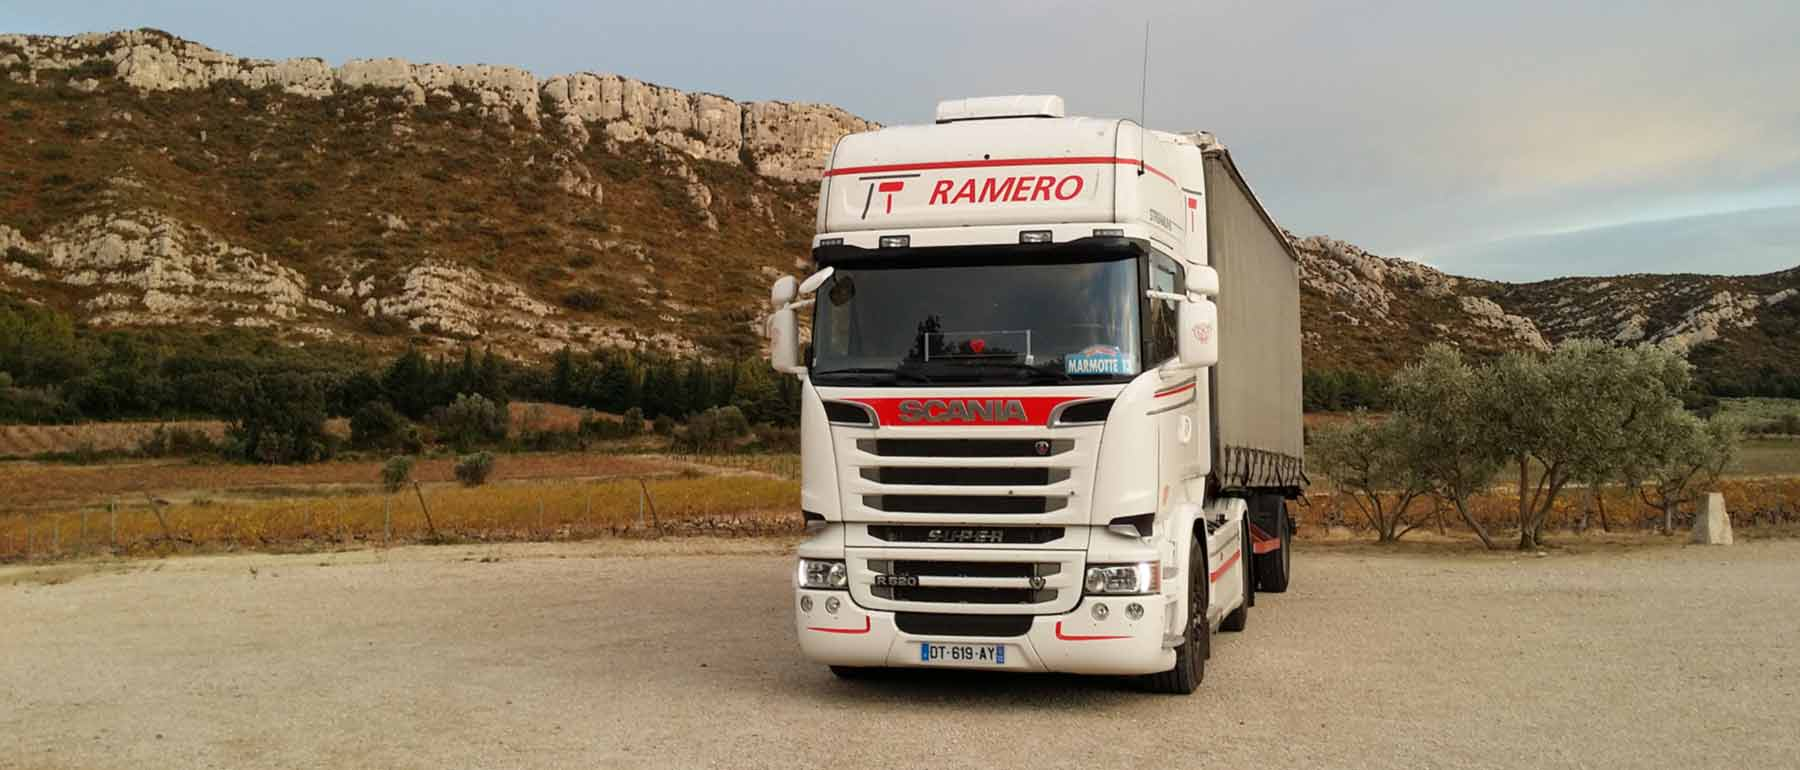 TRANSPORT ROUTIER SALON-DE-PROVENCE